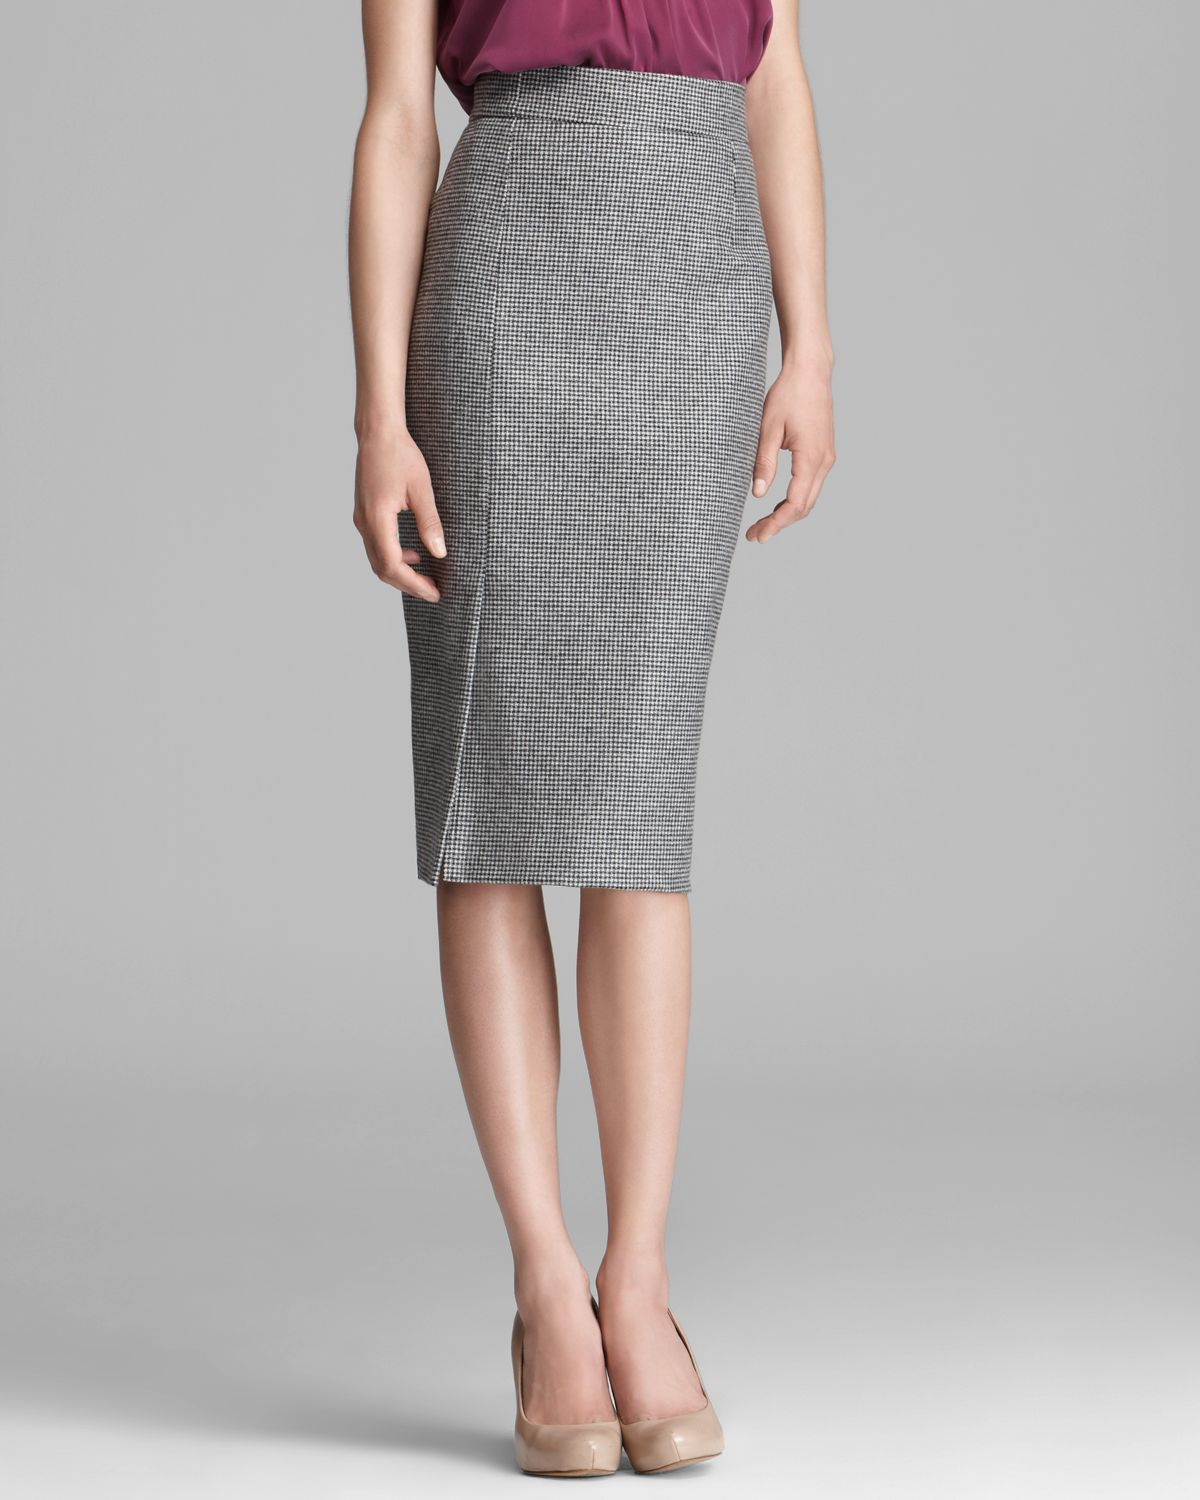 Max mara studio Europa Pencil Skirt in Gray | Lyst